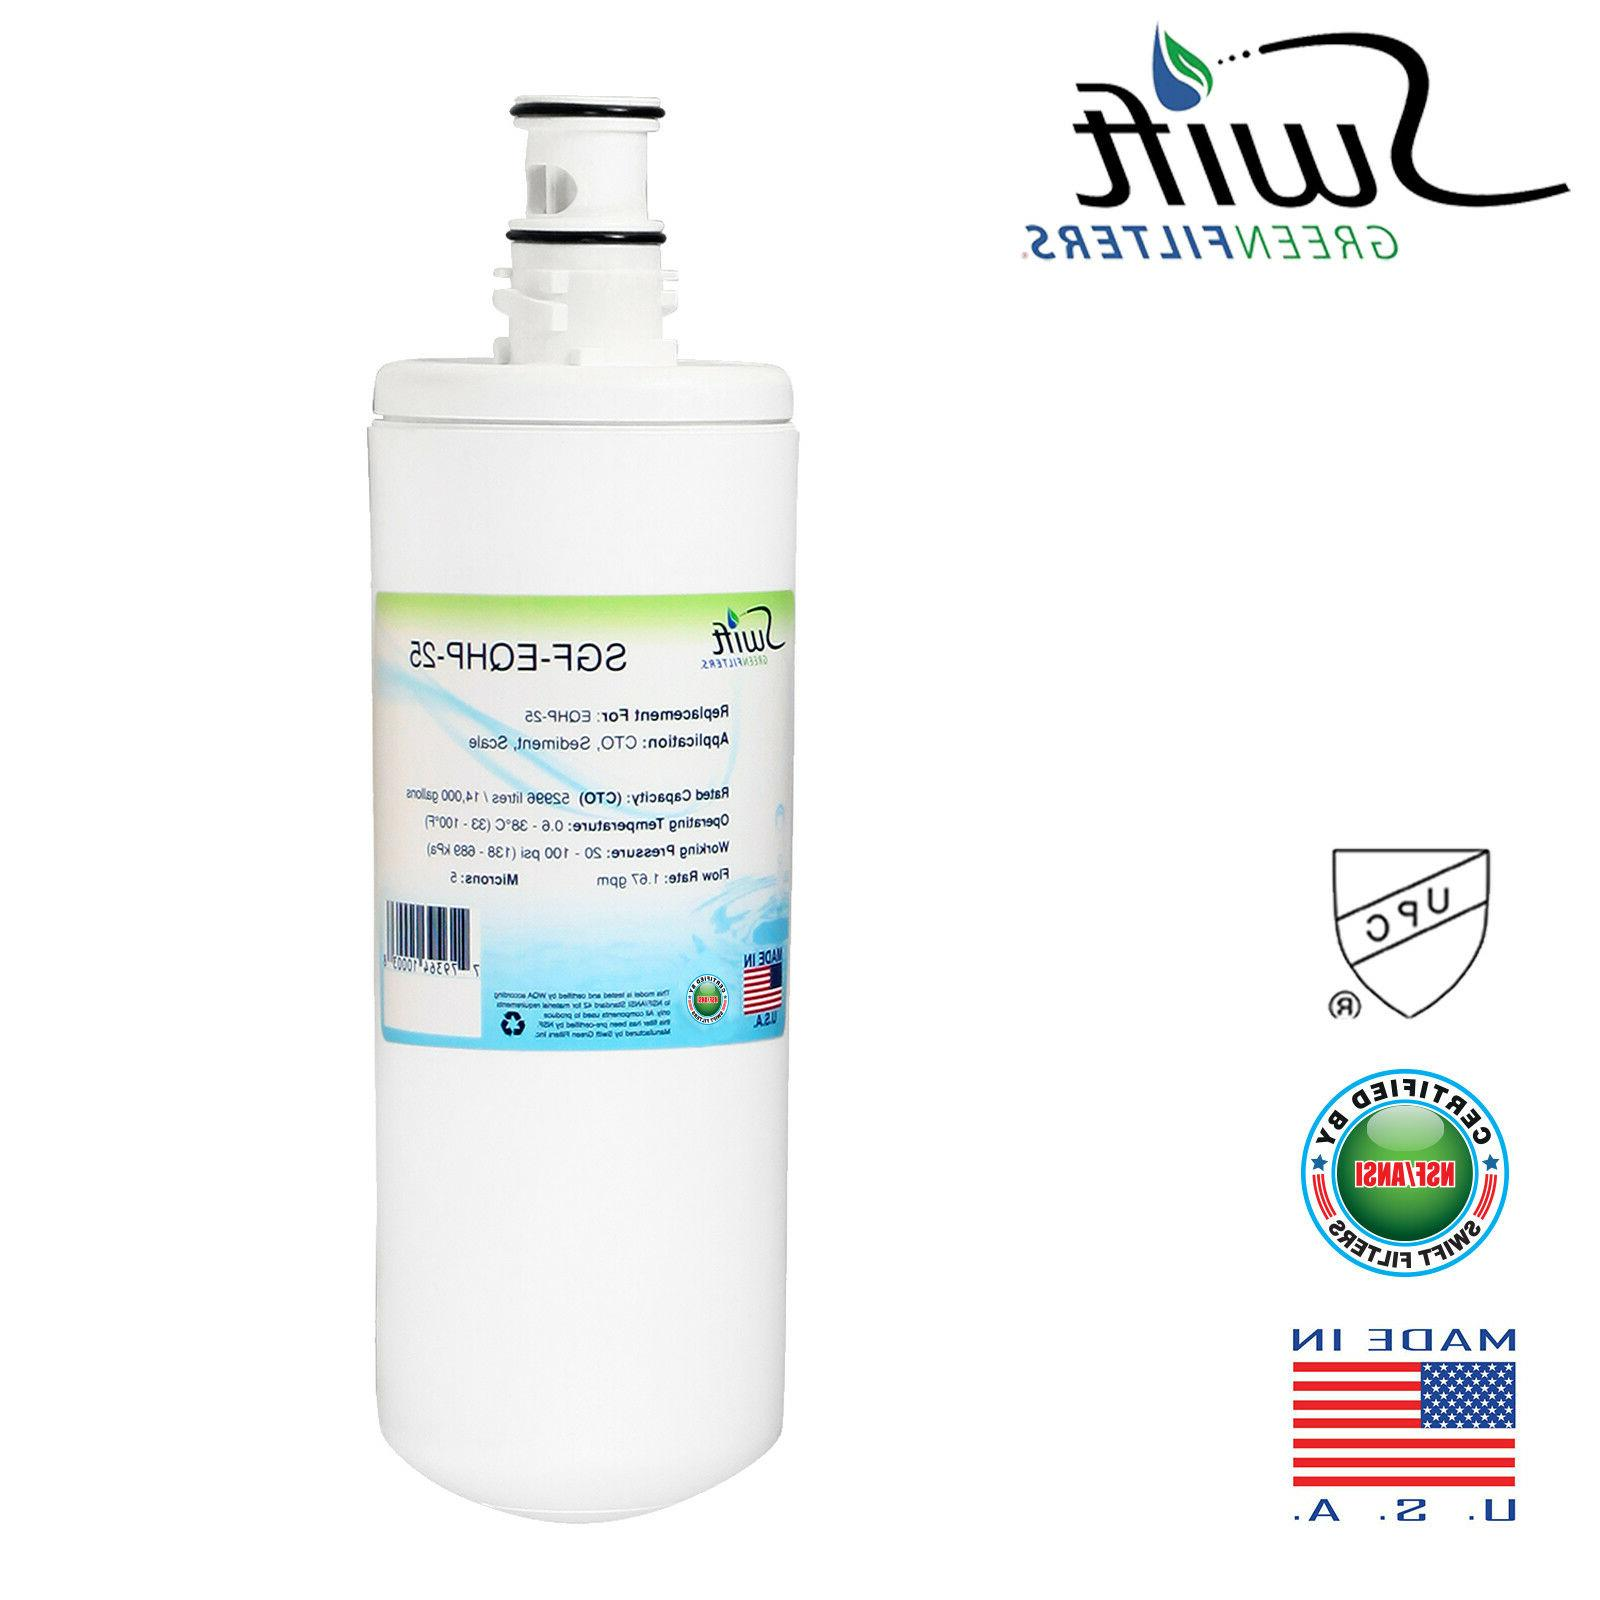 Bunn EQHP-25 Water Filter Replacement SGF-EQHP-25 by Swift G